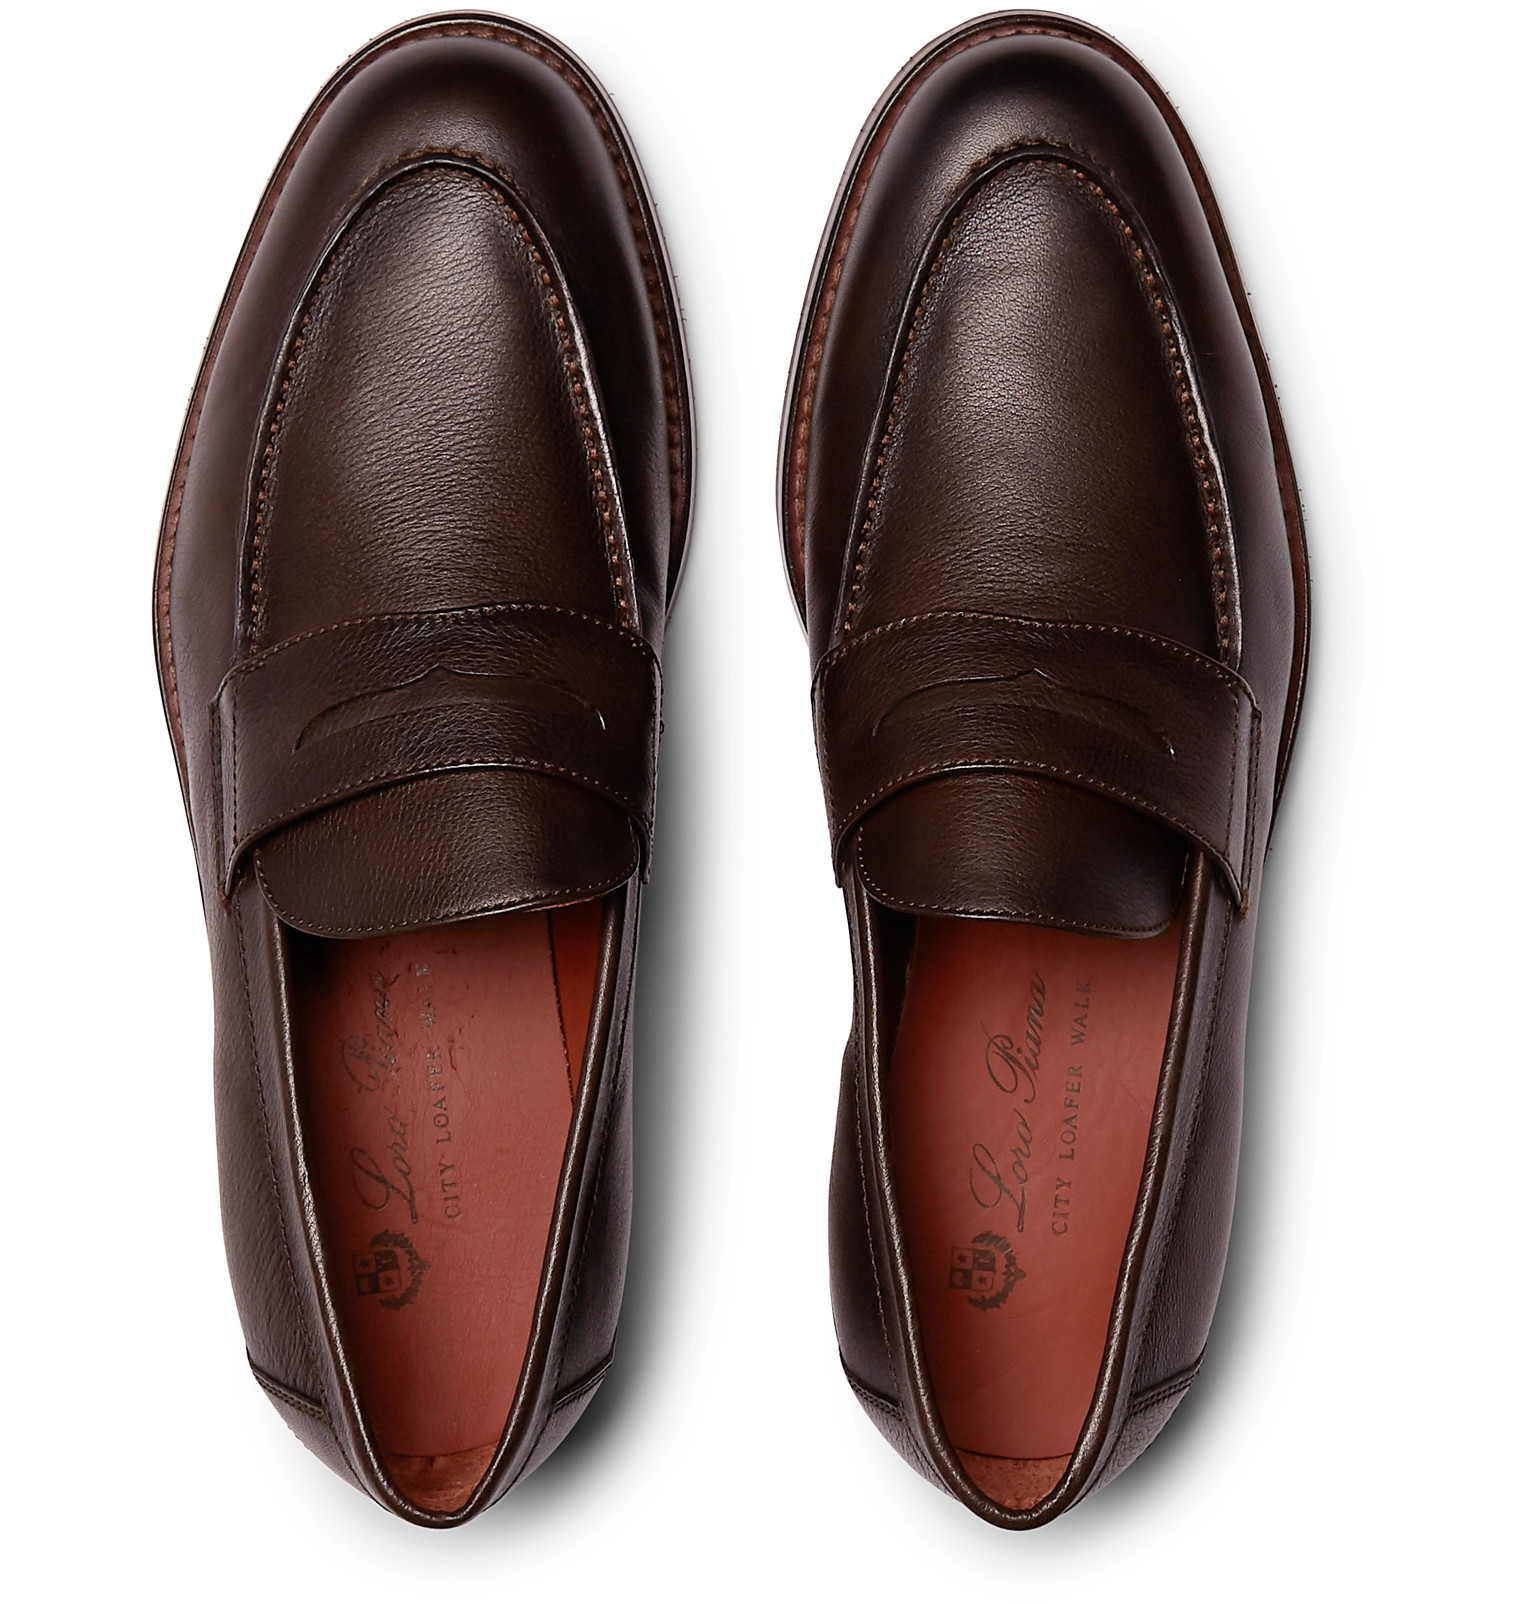 1121250fdcf Loro PianaCity Life Full-Grain Leather Loafers.  1